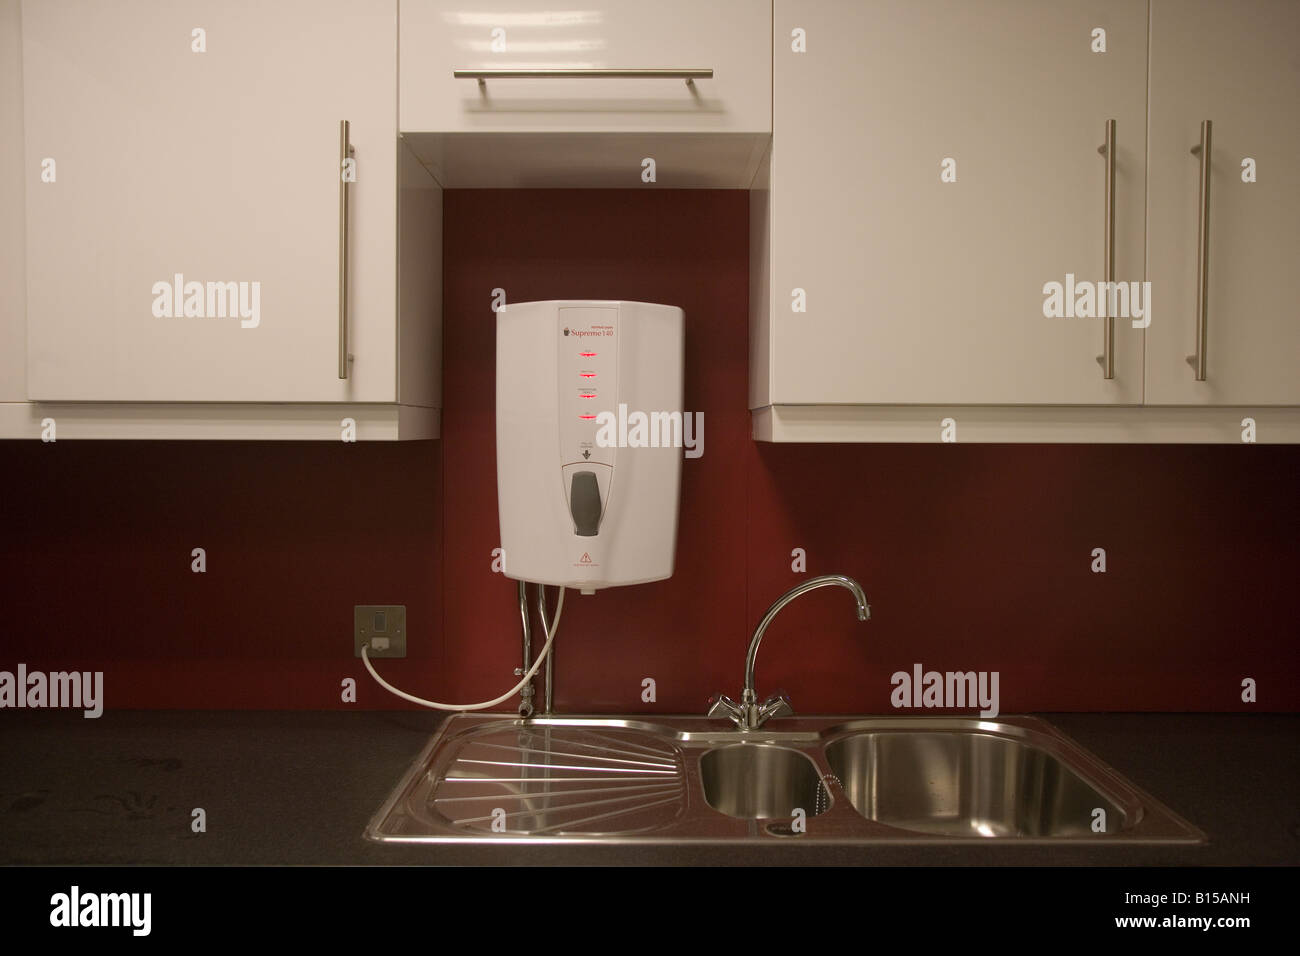 kitchen draining board how to care for granite countertops an electric water heater above a sink. this is in ...